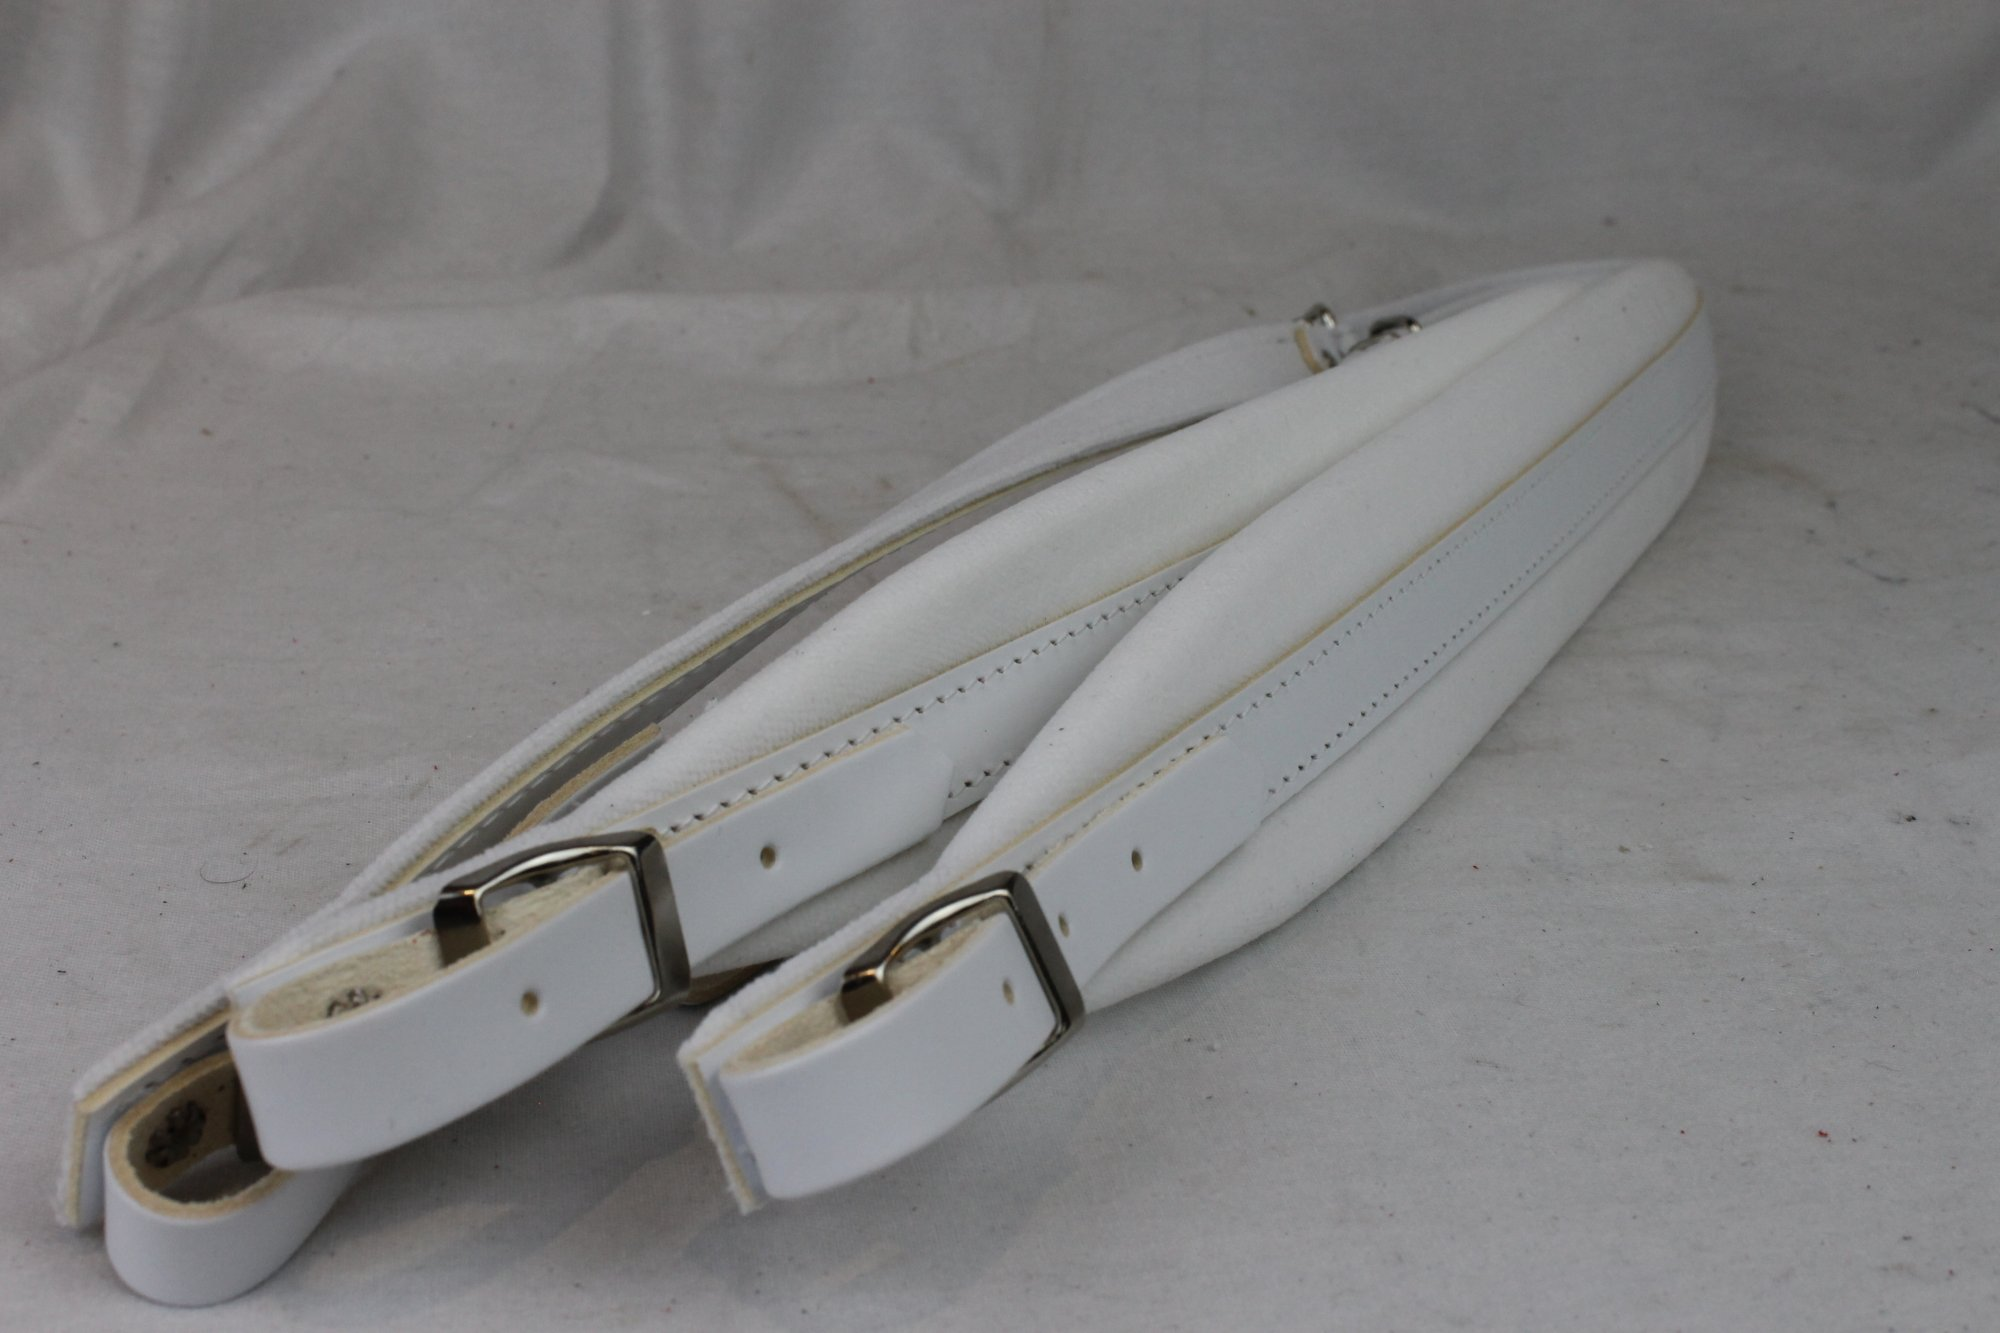 New White Leather Velour Fuselli Accordion Shoulder Straps Width (6 cm / 2.4 inch) Length (91cm-111cm / 35.8-43.7 inch)